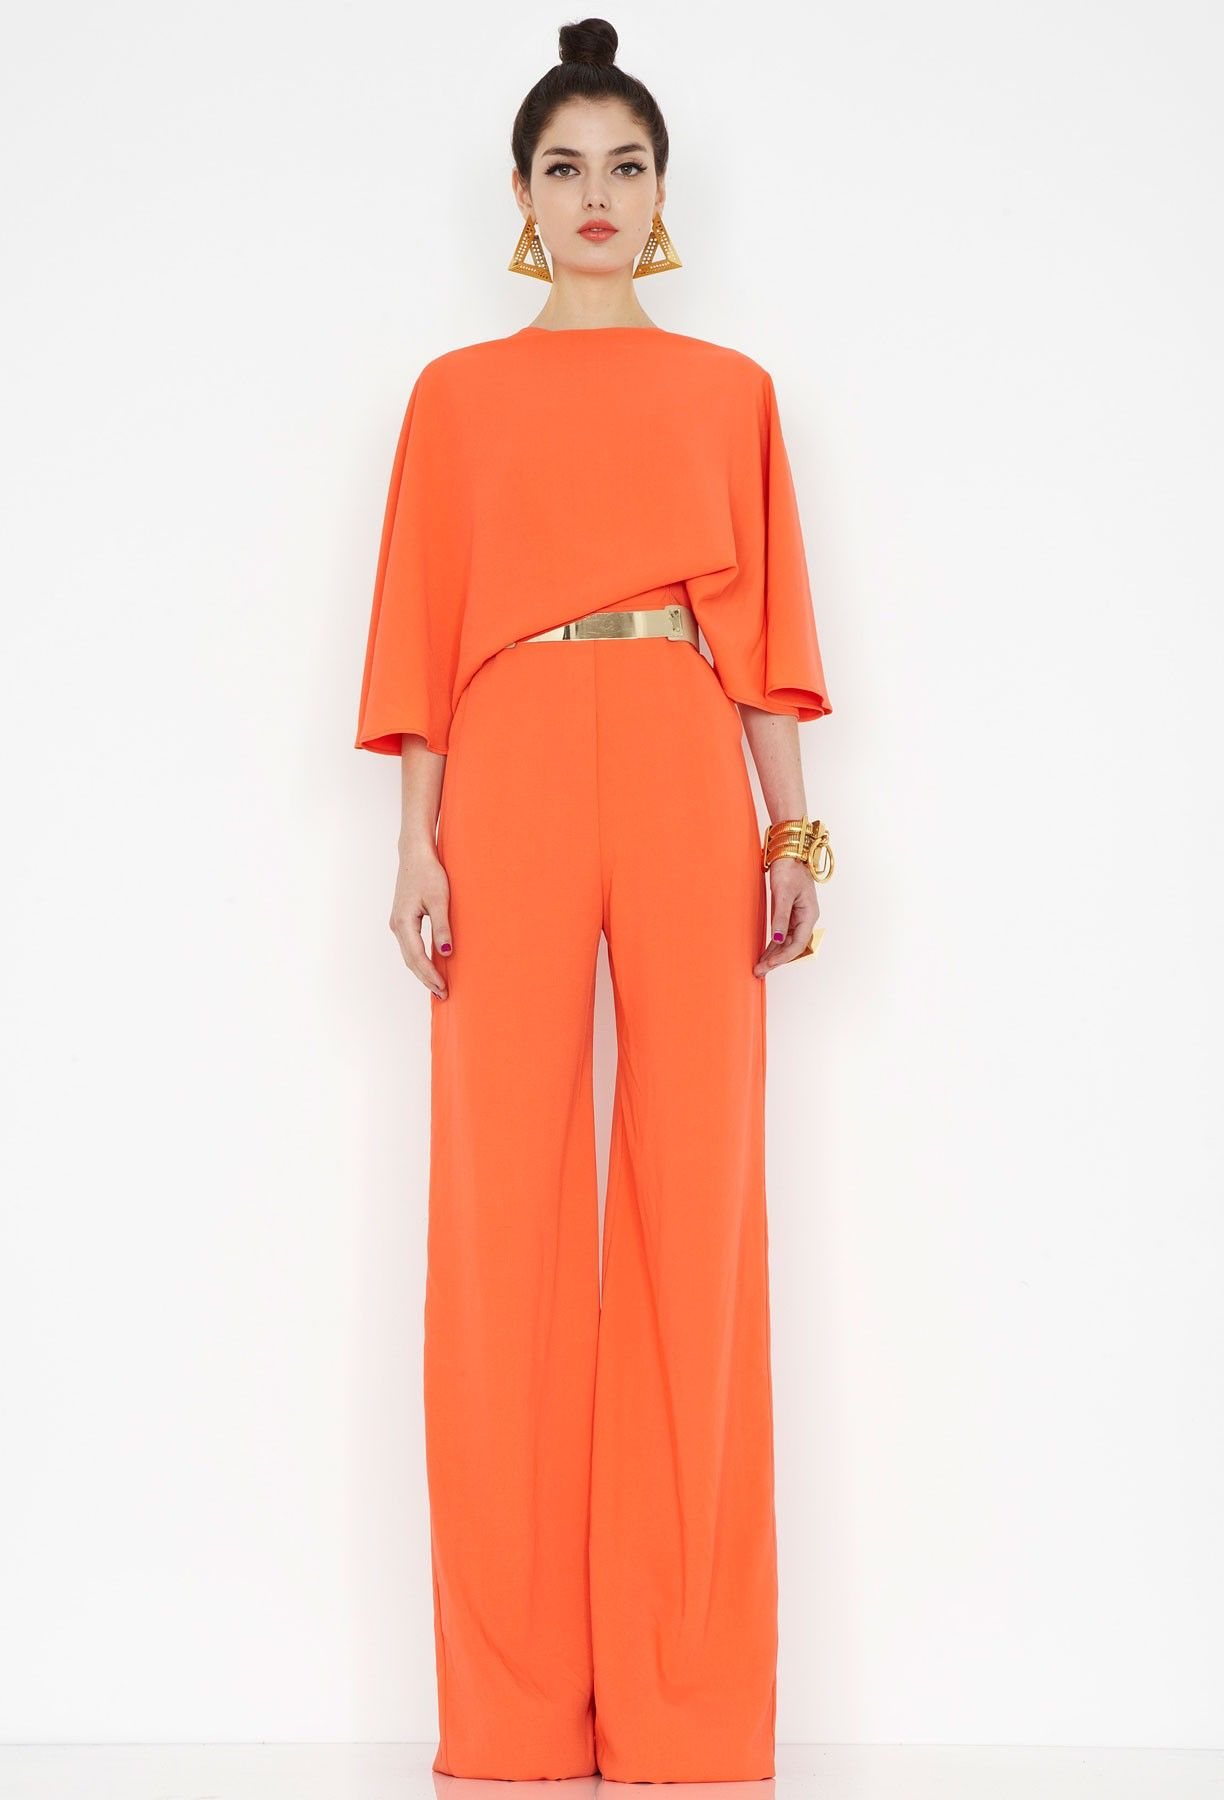 82901ac0bd10 Seiber Orange Backless Jumpsuit  womensjumpsuitsformal